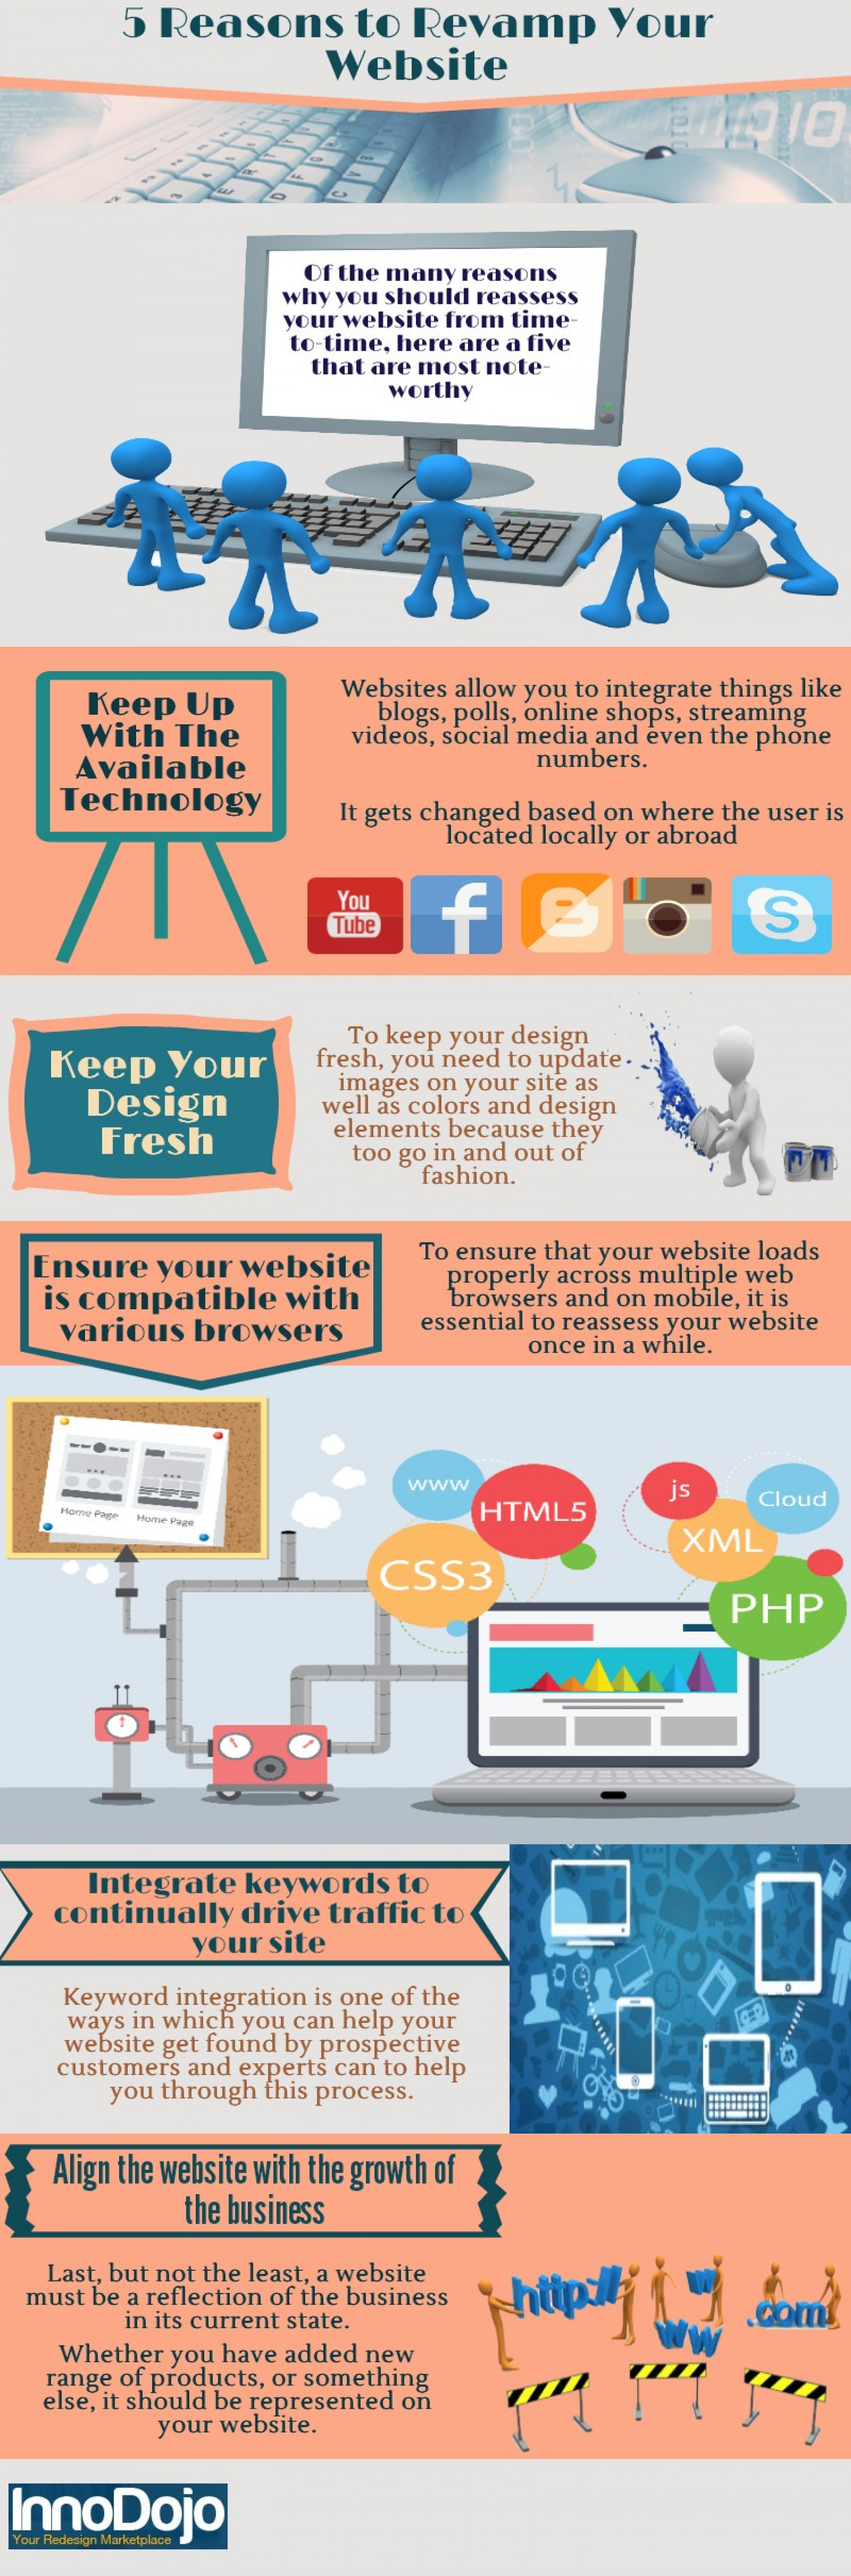 5 Reasons to Revamp Your Website Infographic